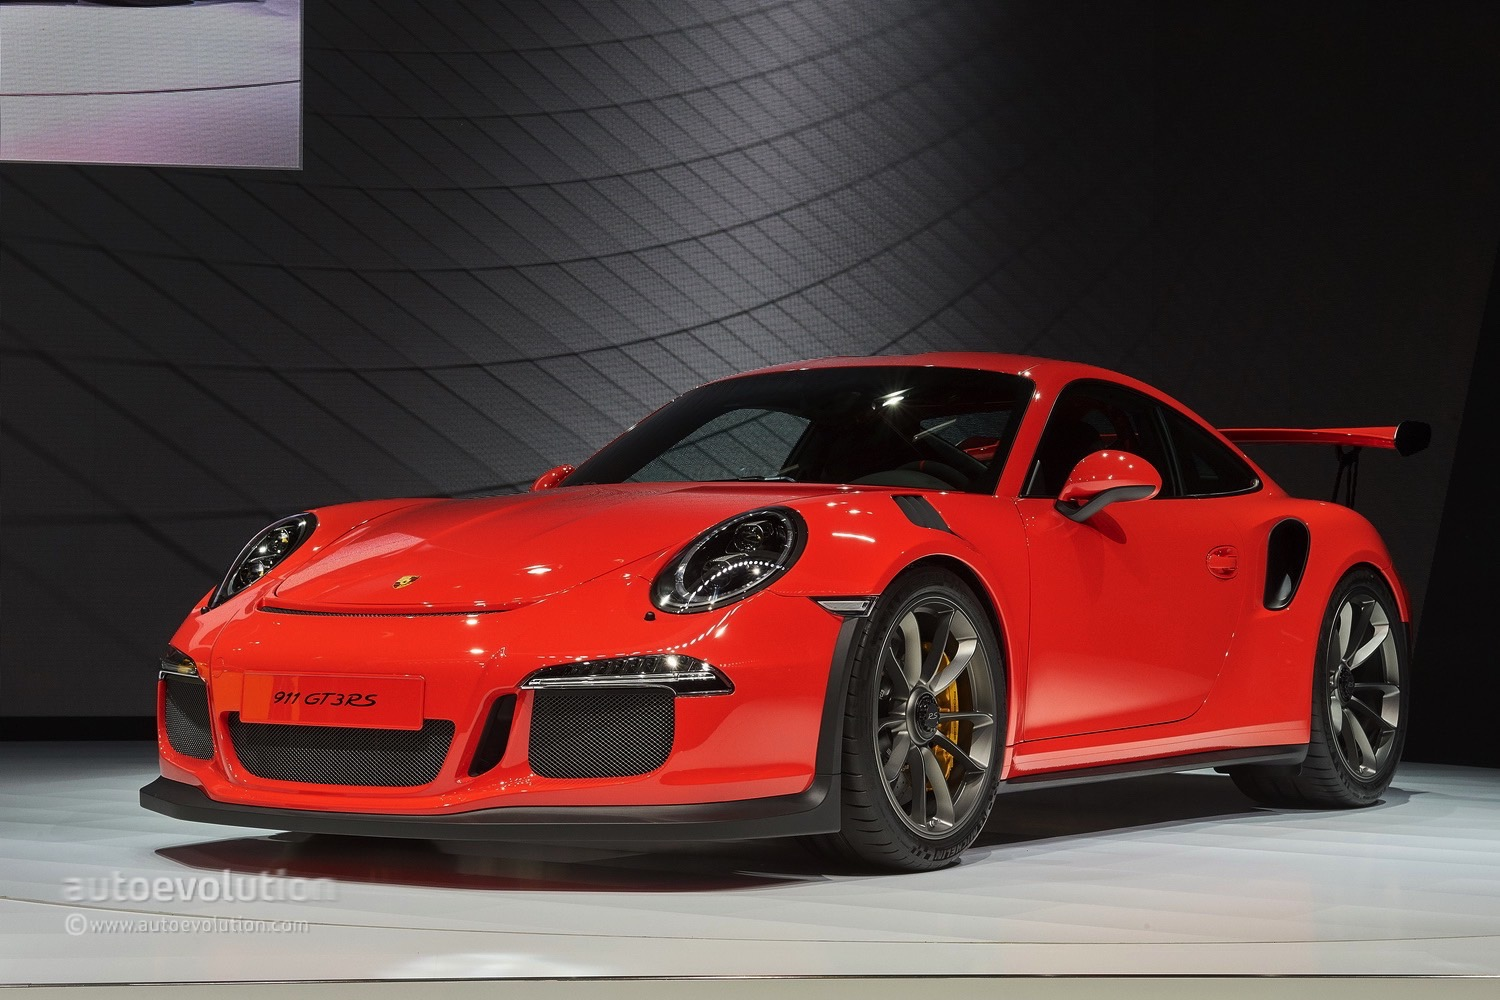 Porsche 911 Gt3 Rs Is The Supermodel Of Race Cars In Geneva Autoevolution